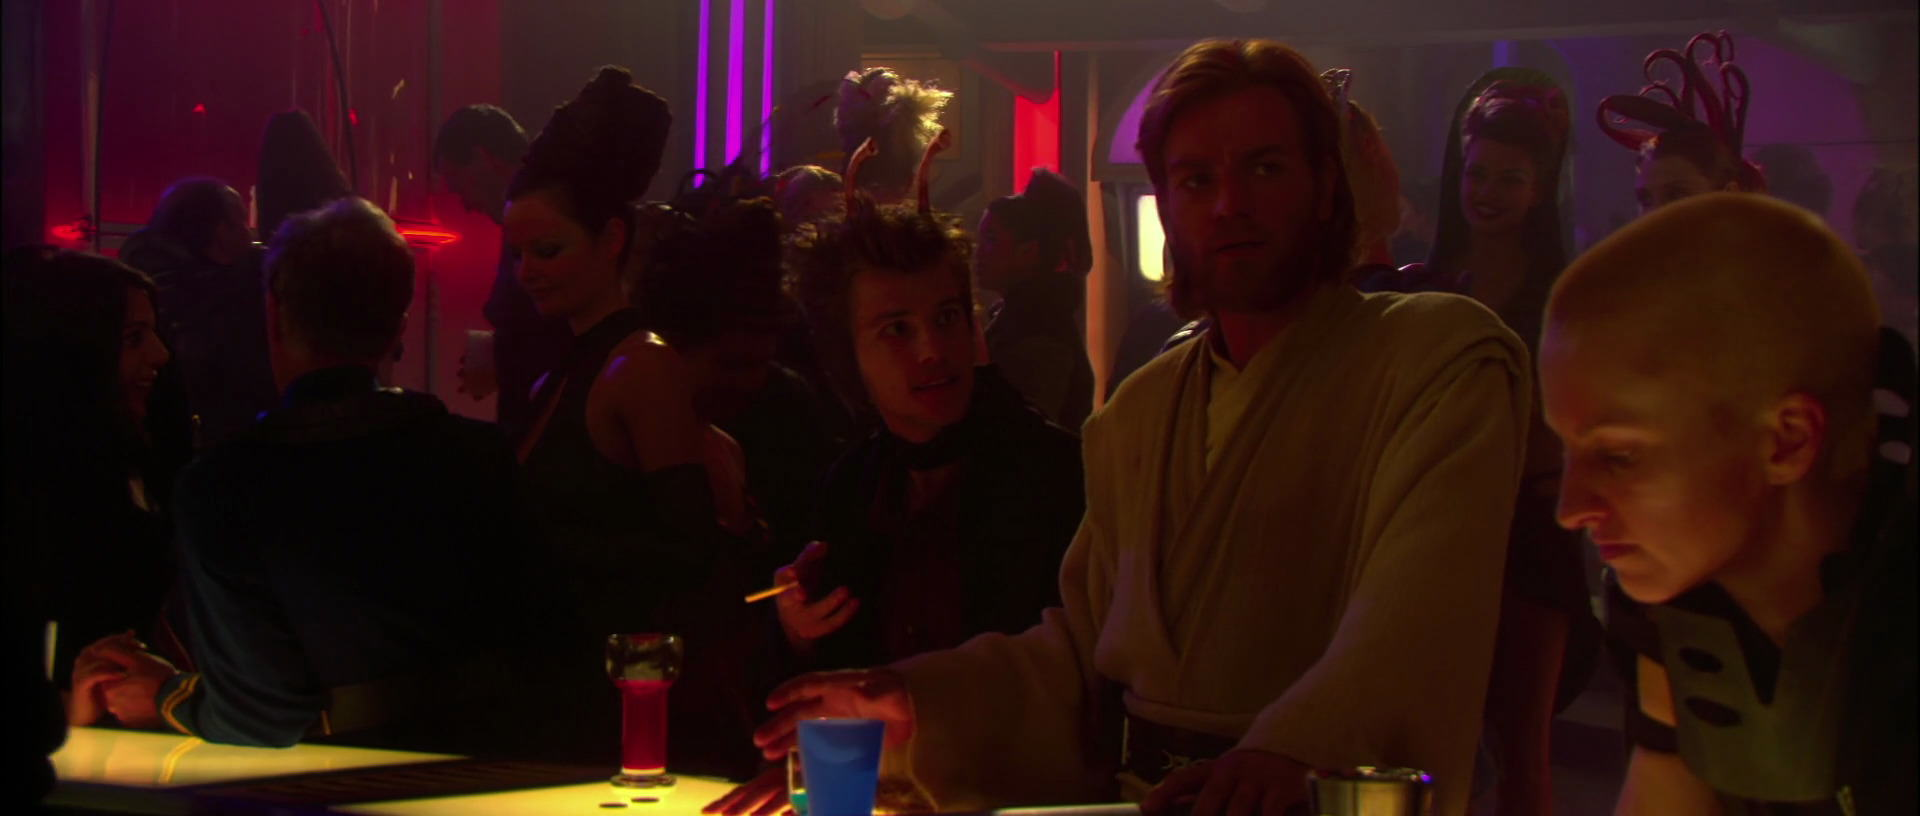 UNILAD star wars matrix 123604 Star Wars: Attack Of The Clones Has An Awesome Matrix Easter Egg, Apparently